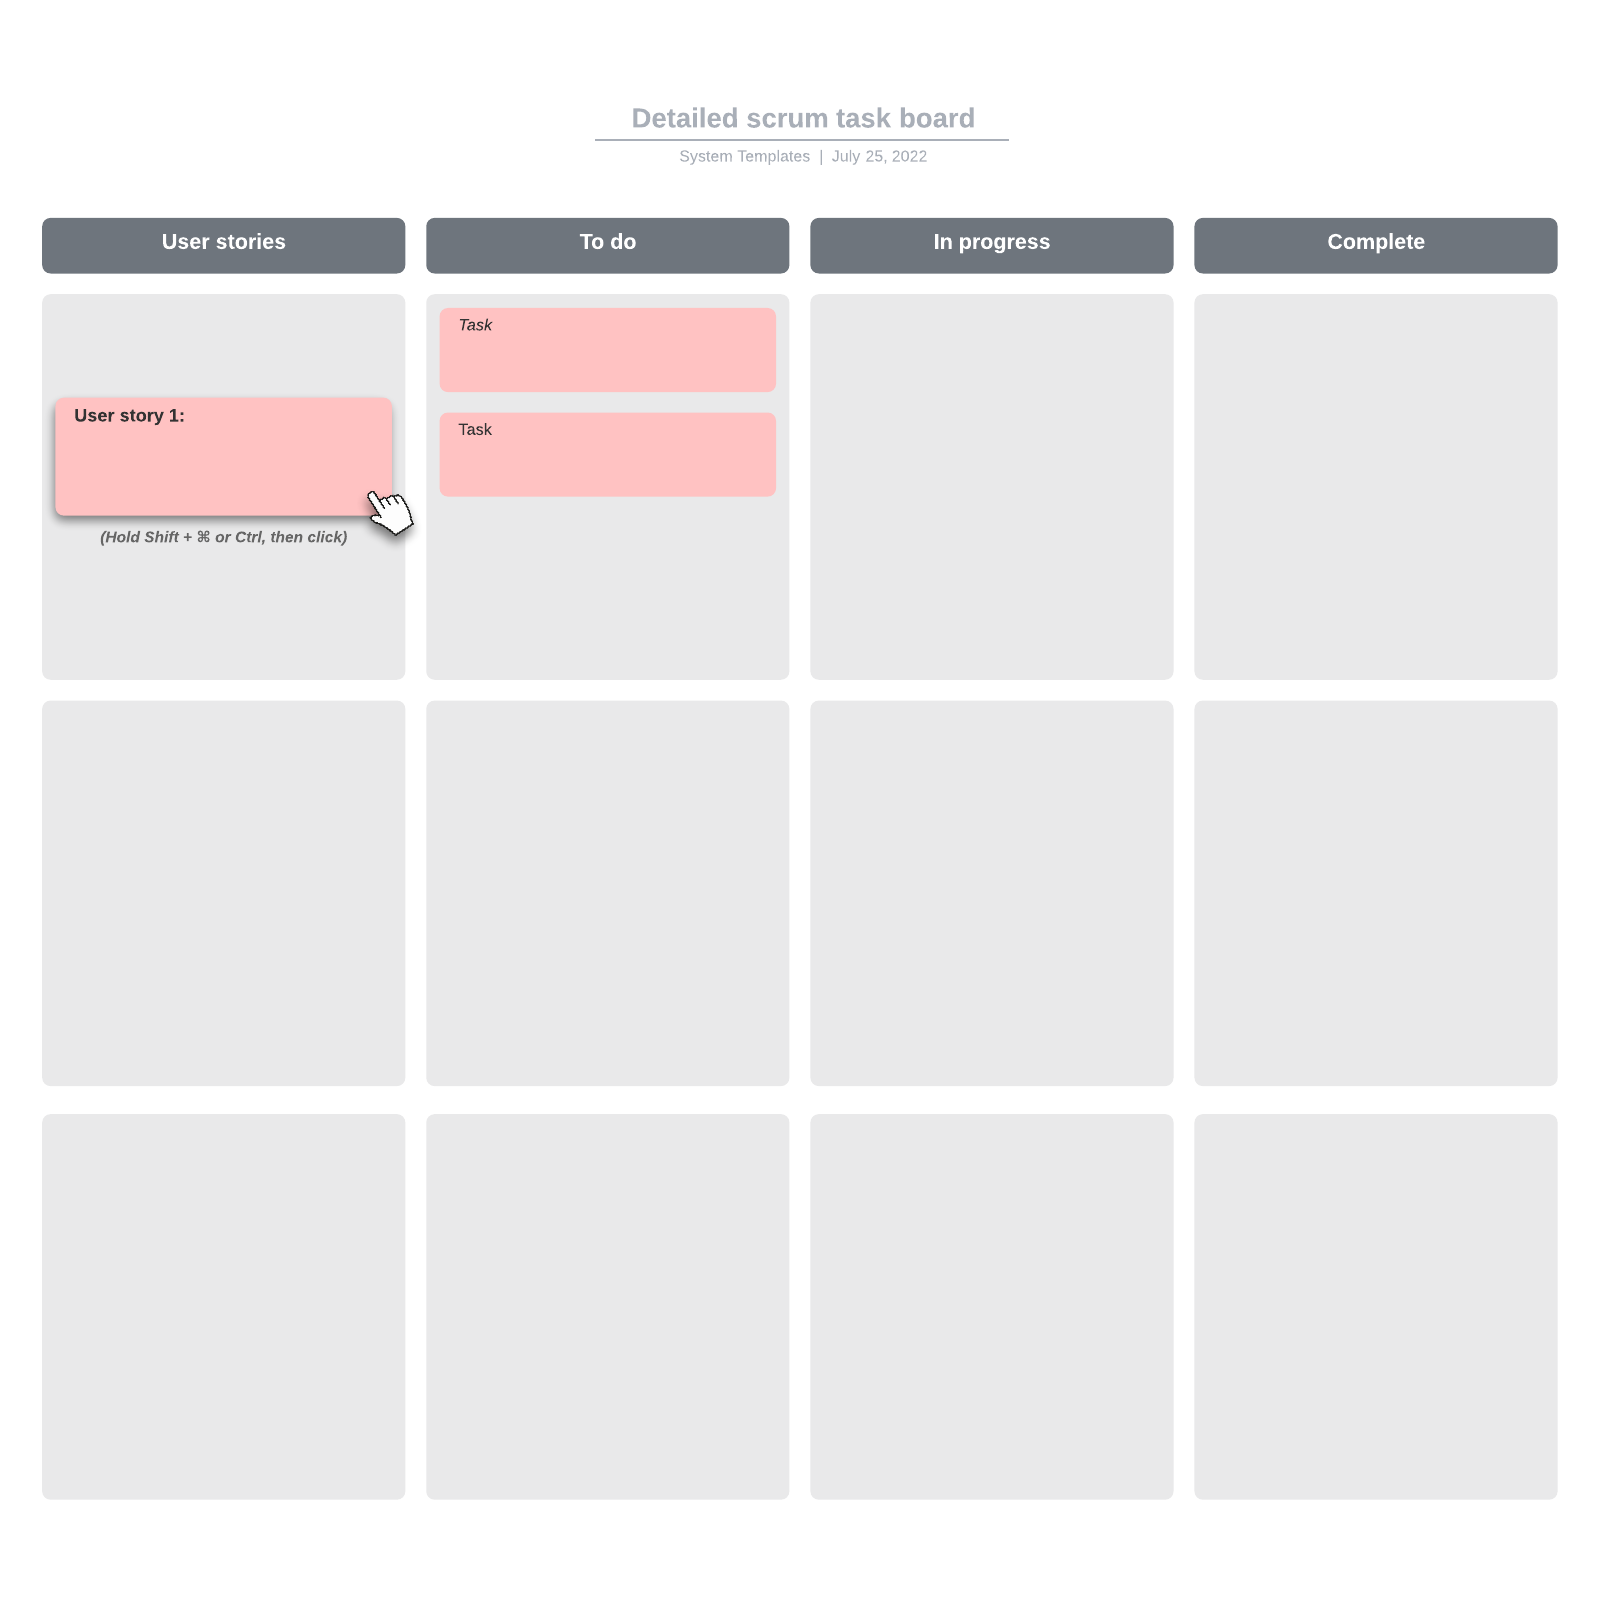 Detailed Scrum task board